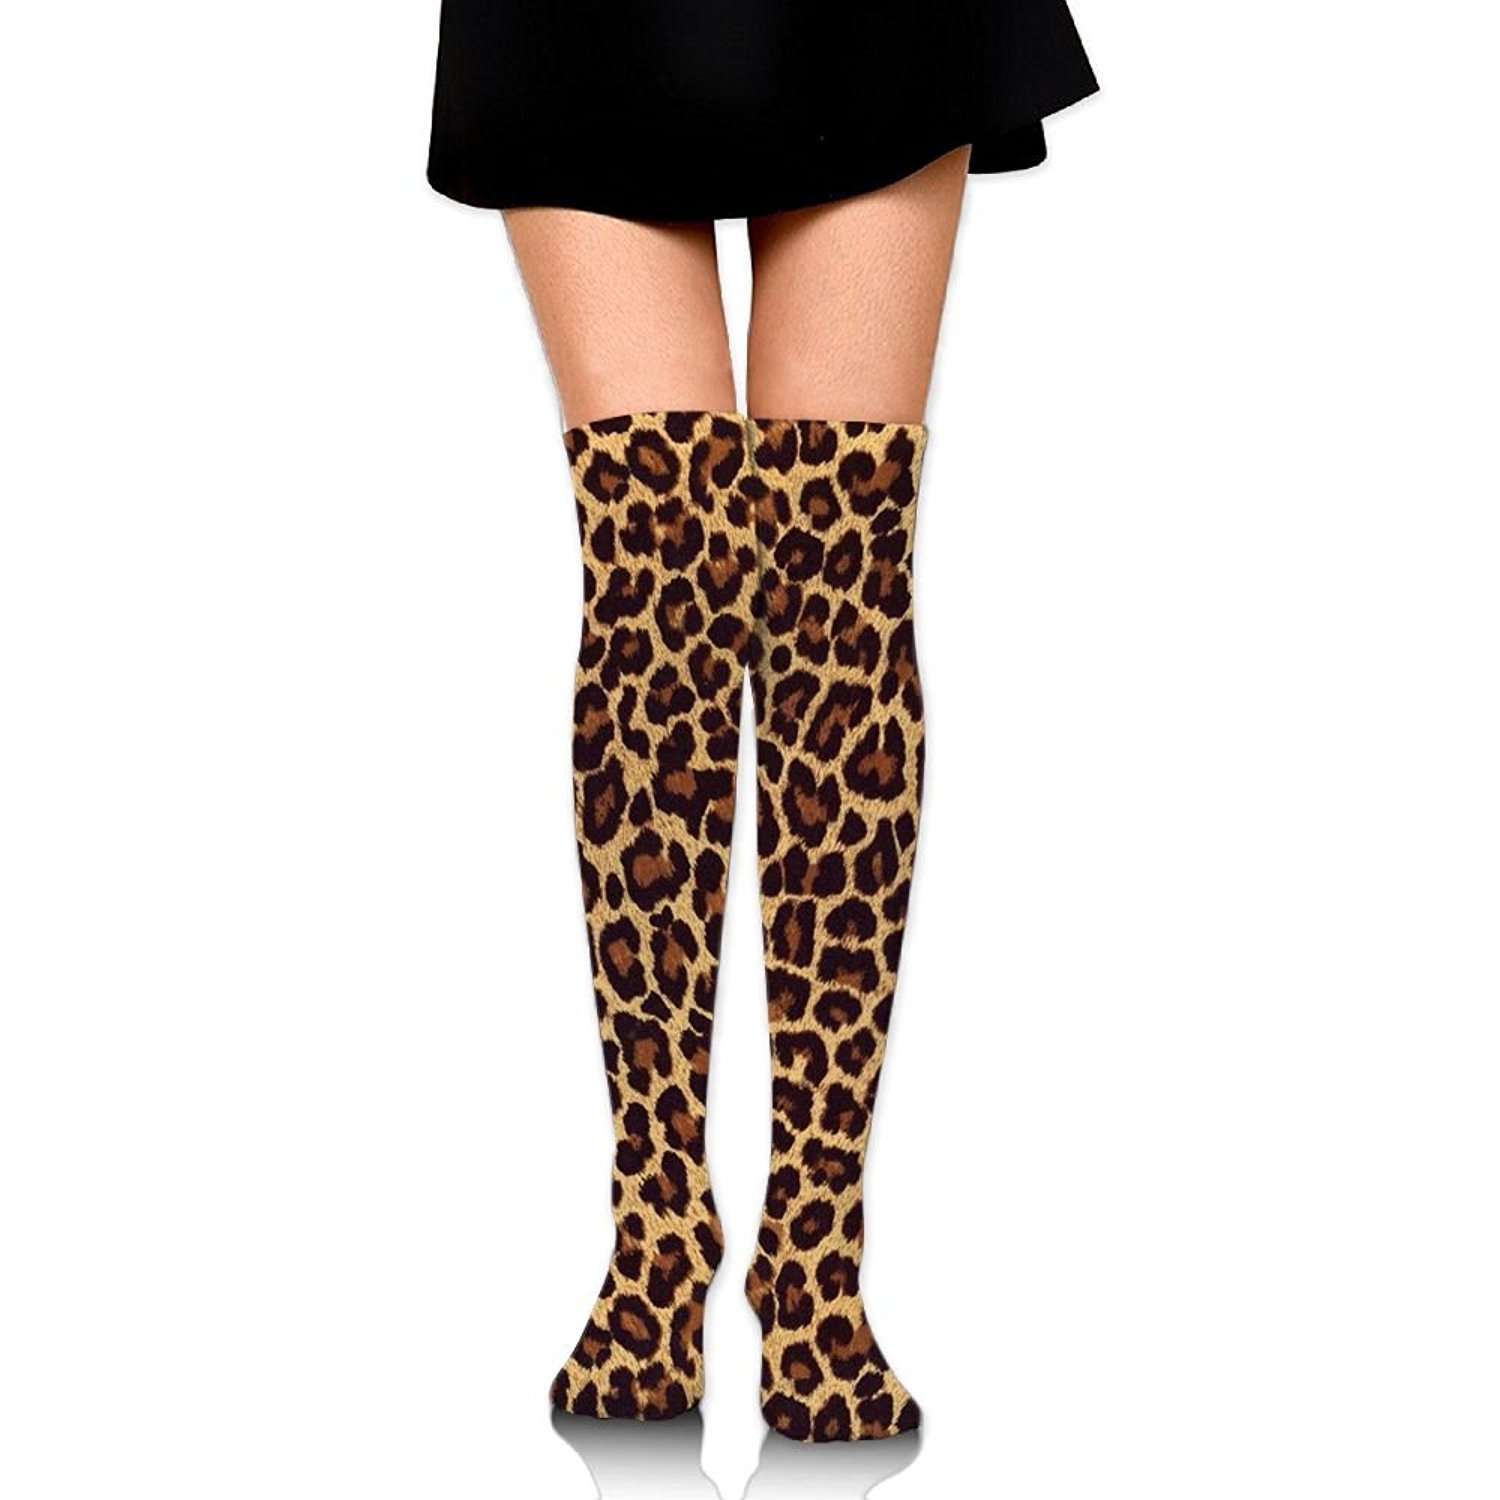 Zaqxsw Leopard Women Graphic Thigh High Socks Girls Socks For Girls